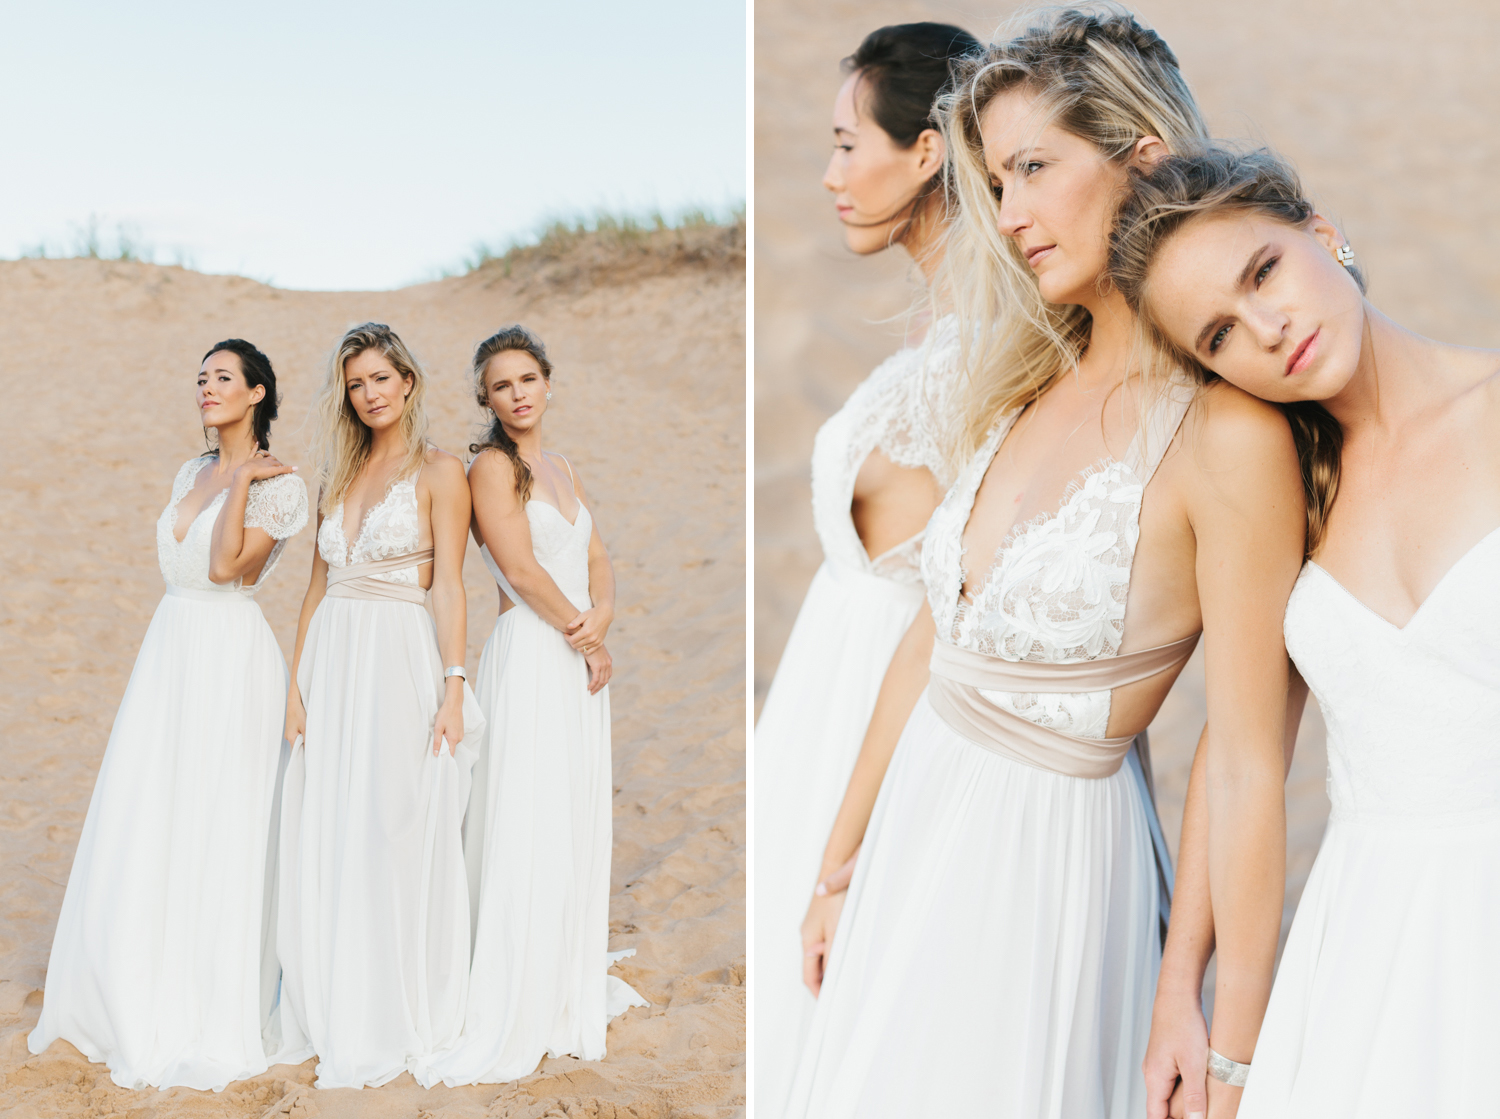 Sleeping Bear Dunes Bridal Portraits Wedding Photographer Mae Stier-013.jpg